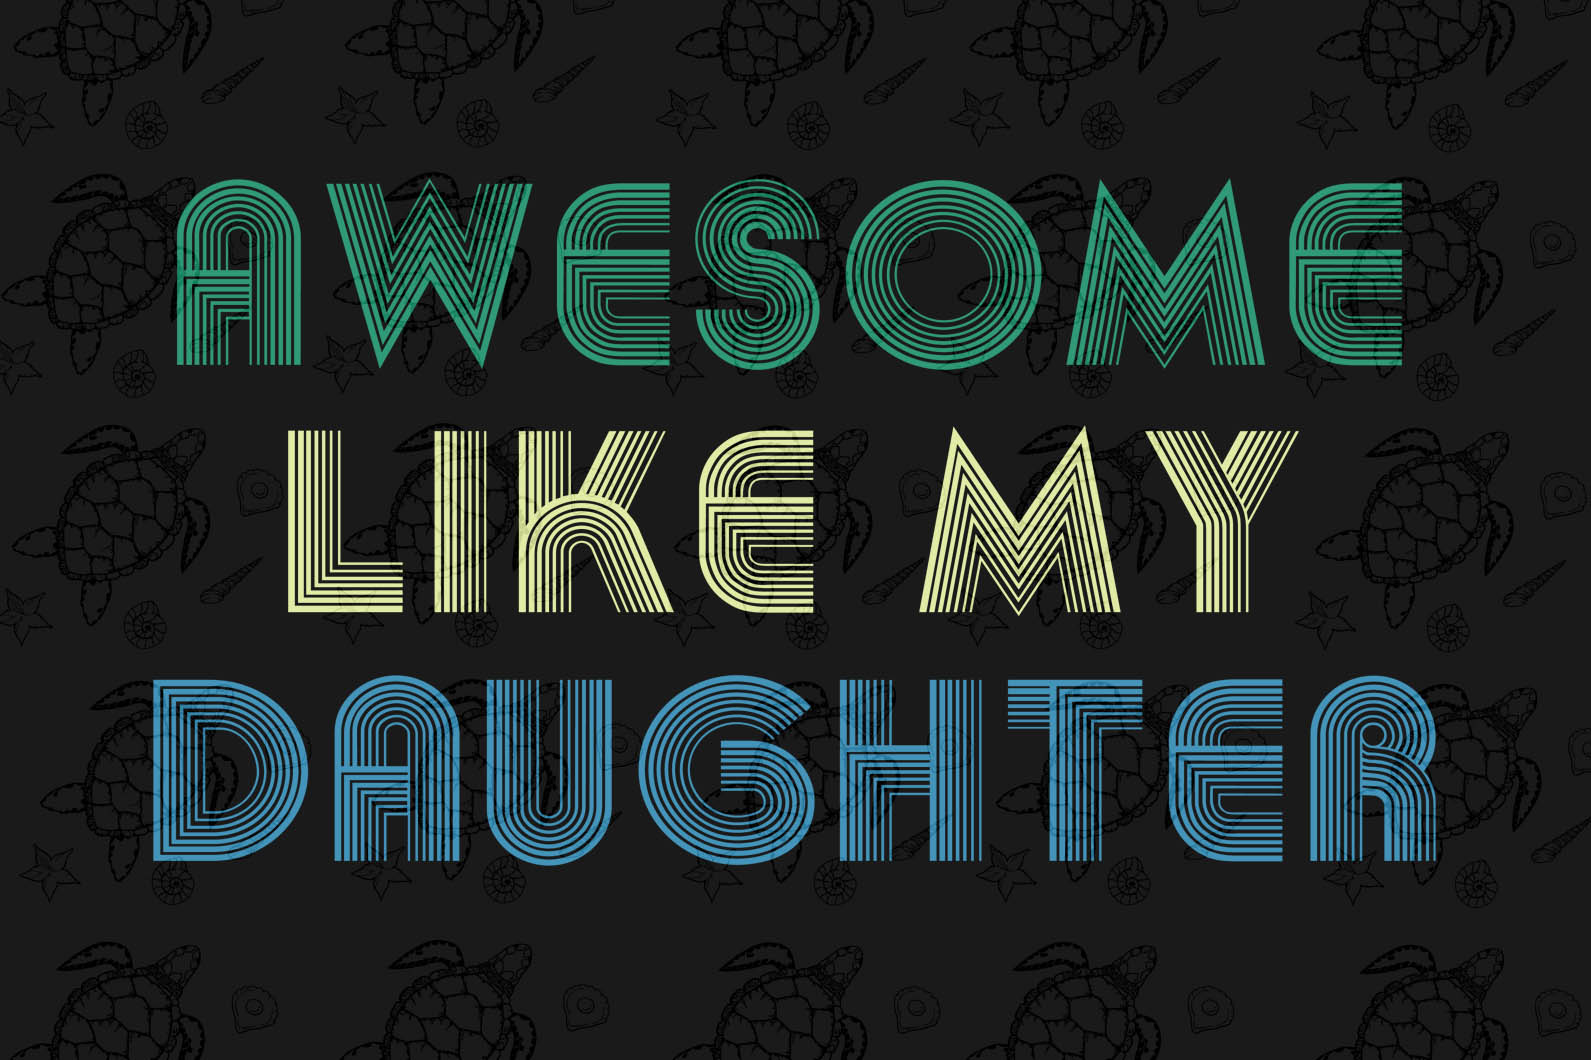 Awesome my daughter svg,happy fathers day gift,happy fathers day,love father,father gift,fathers day shirt, gift for father,happy fathers day gift,nurse svg, love daddy, best dad ever, best dad, best gift,